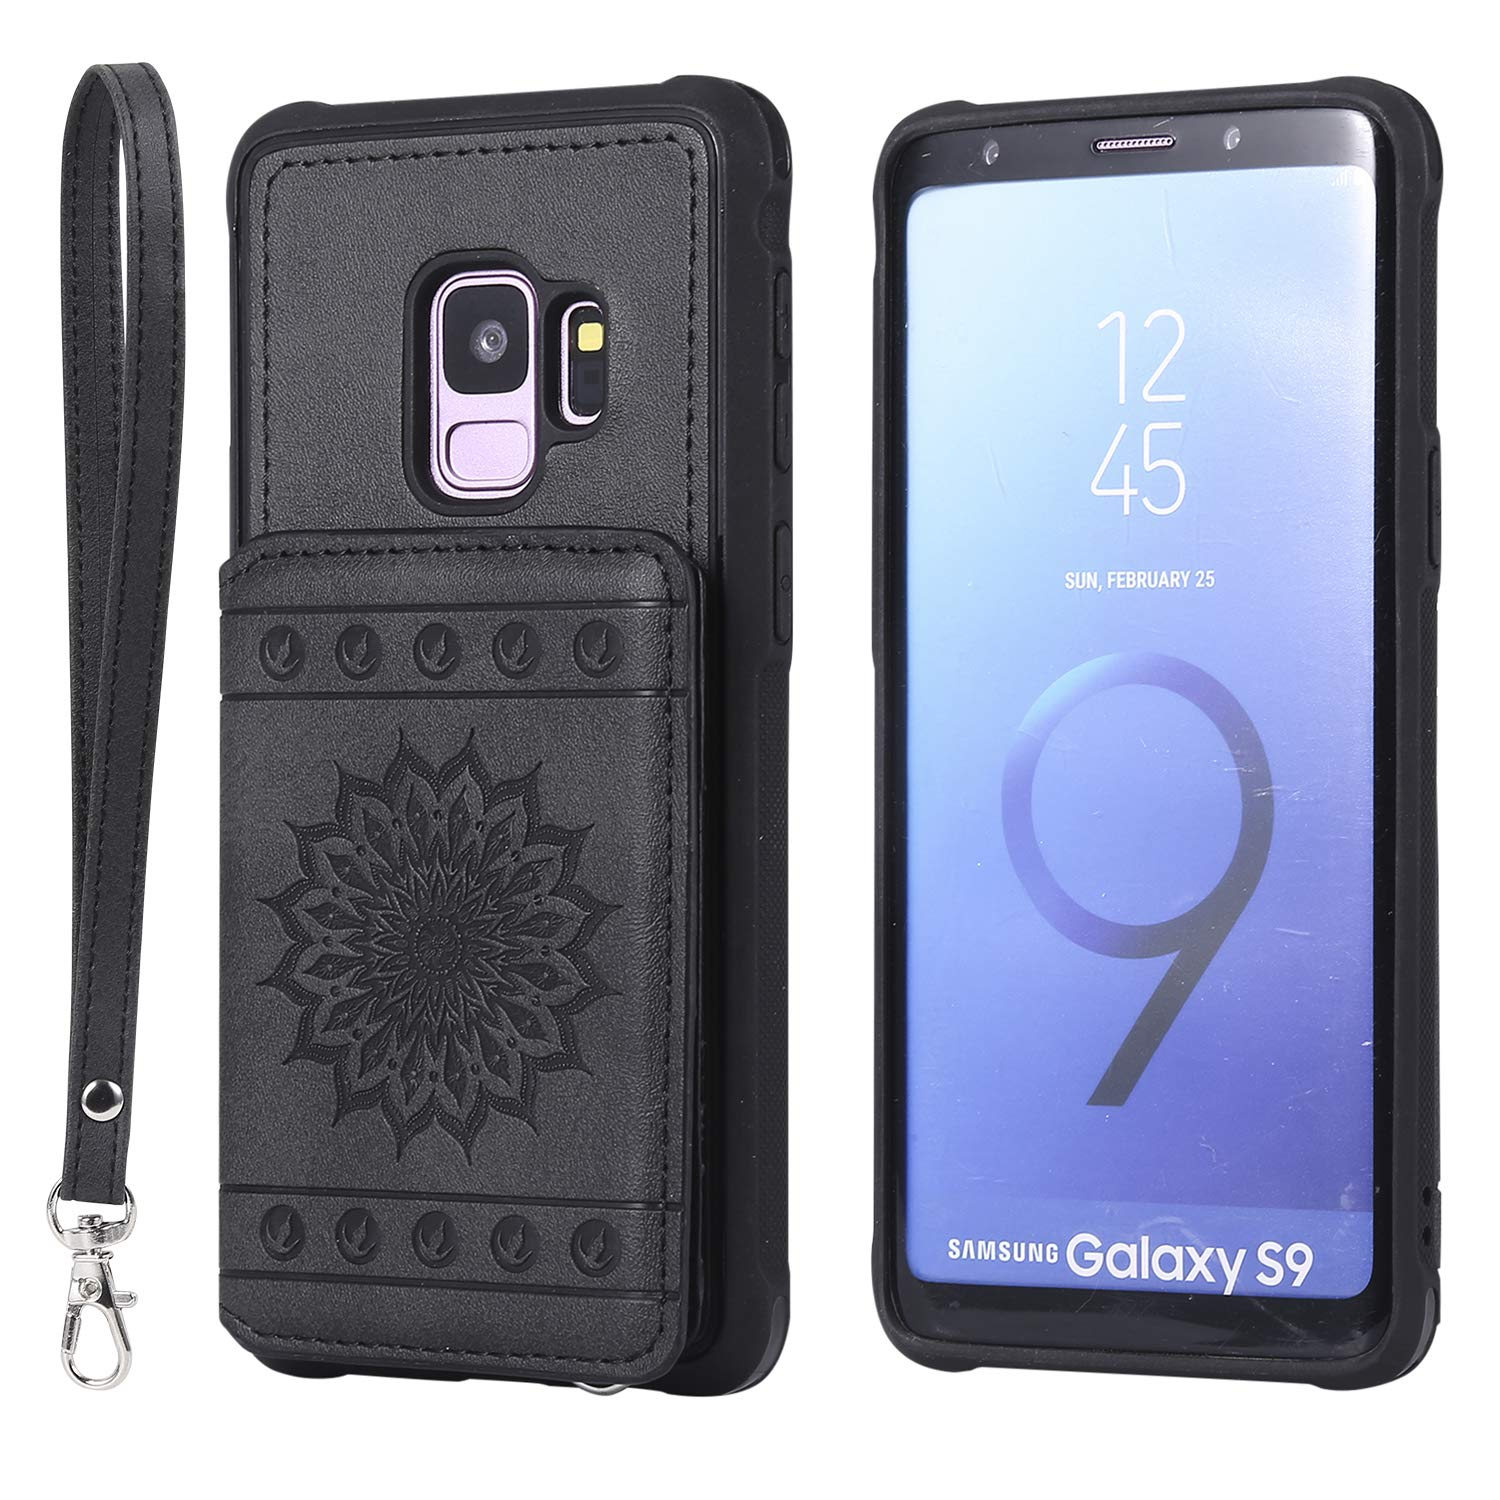 Galaxy S9 Case,DAMONDY Luxury Flower Sunflower Wallet Purse Card Holders Design Cover Soft Shockproof Bumper Flip Leather Kickstand Clasp Wrist Strap Case for Samsung Galaxy S9 2018-Black by DAMONDY